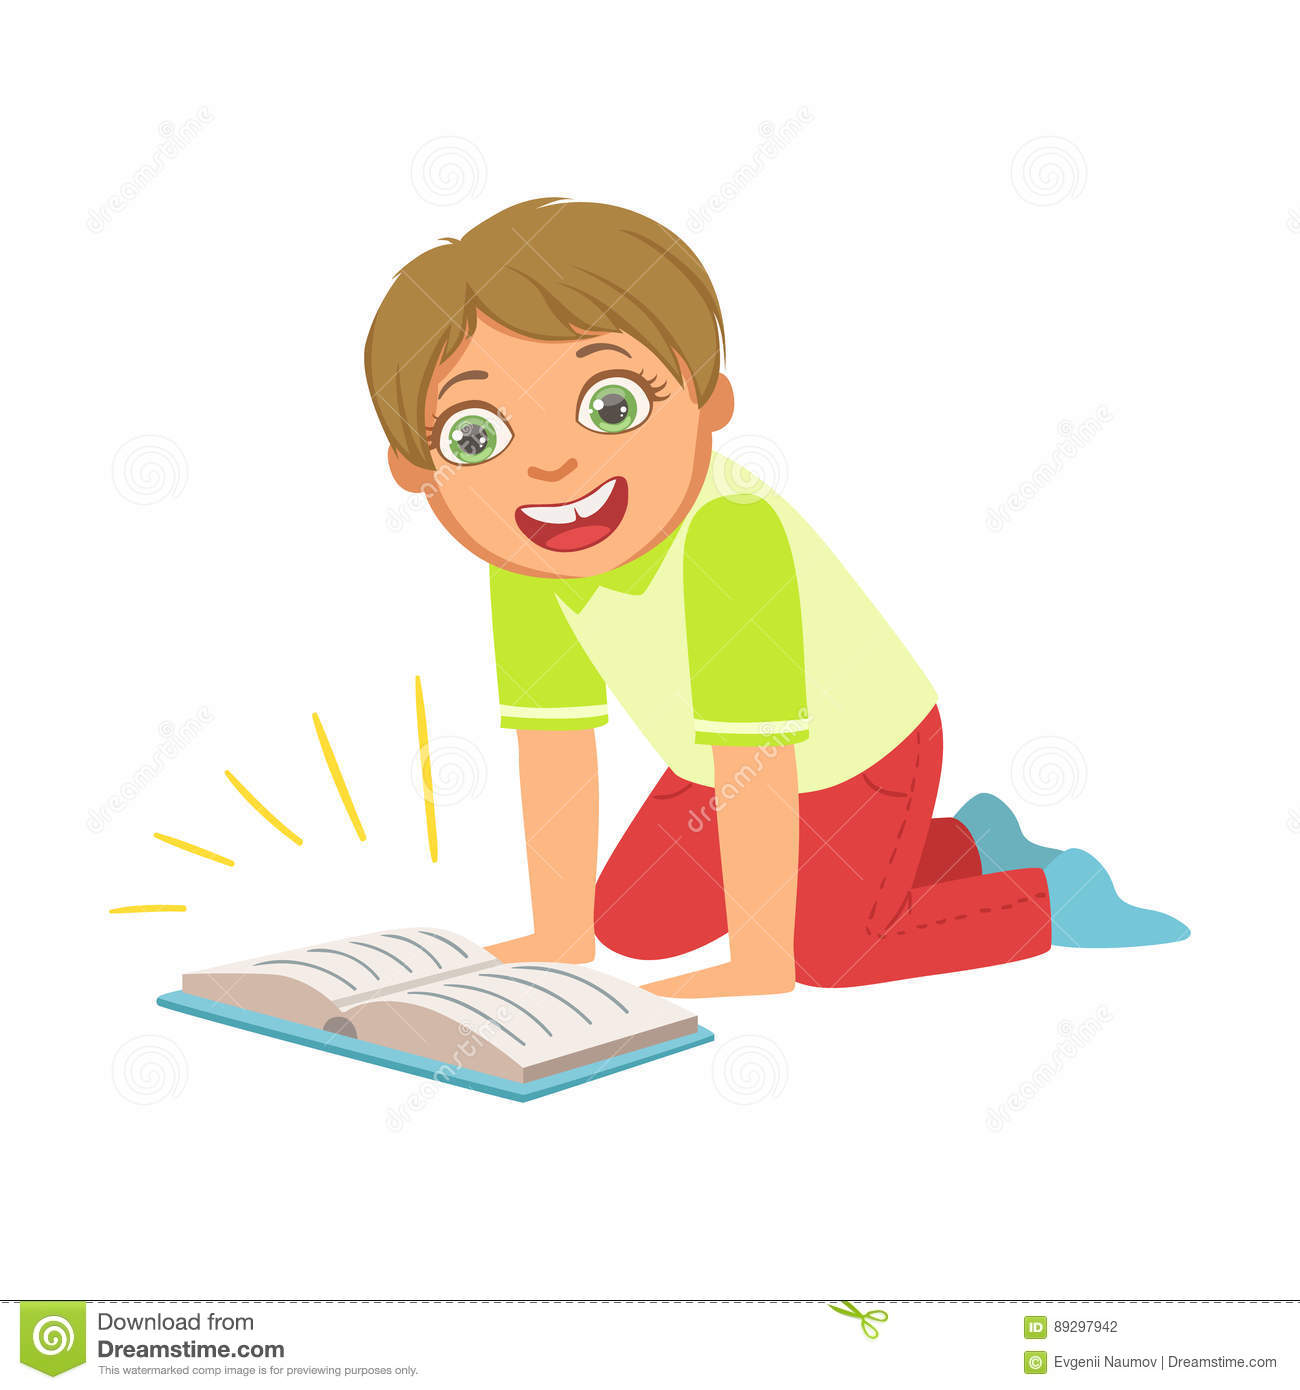 Kids Boy Reading Book Cartoon Vector | CartoonDealer.com ...